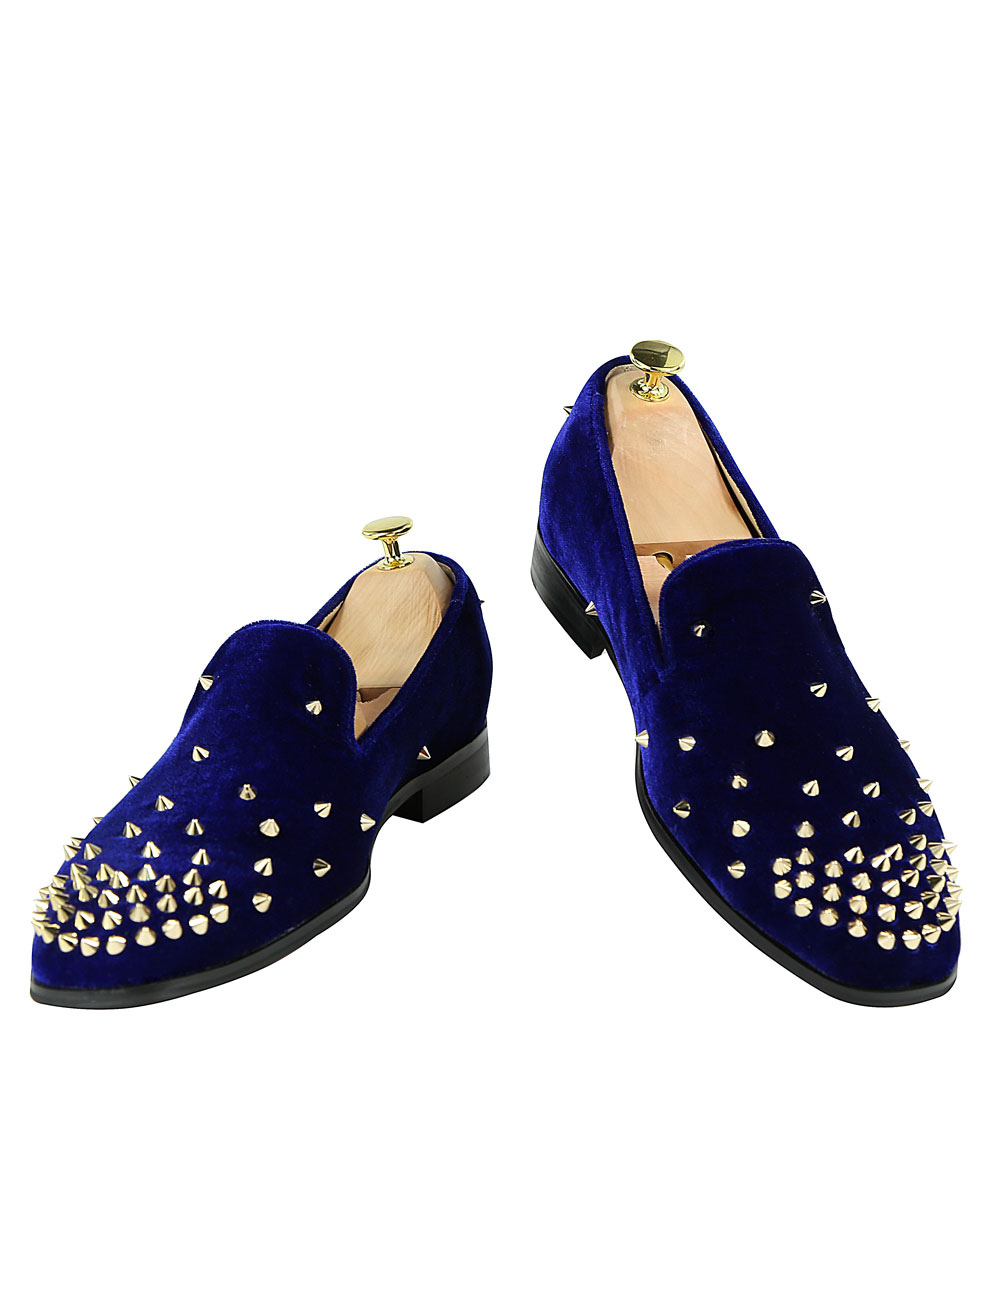 Buy Men Blue Loafers Round Toe Terry Rivets Slip On Spike Shoes Dress Shoes for $57.79 in Milanoo store